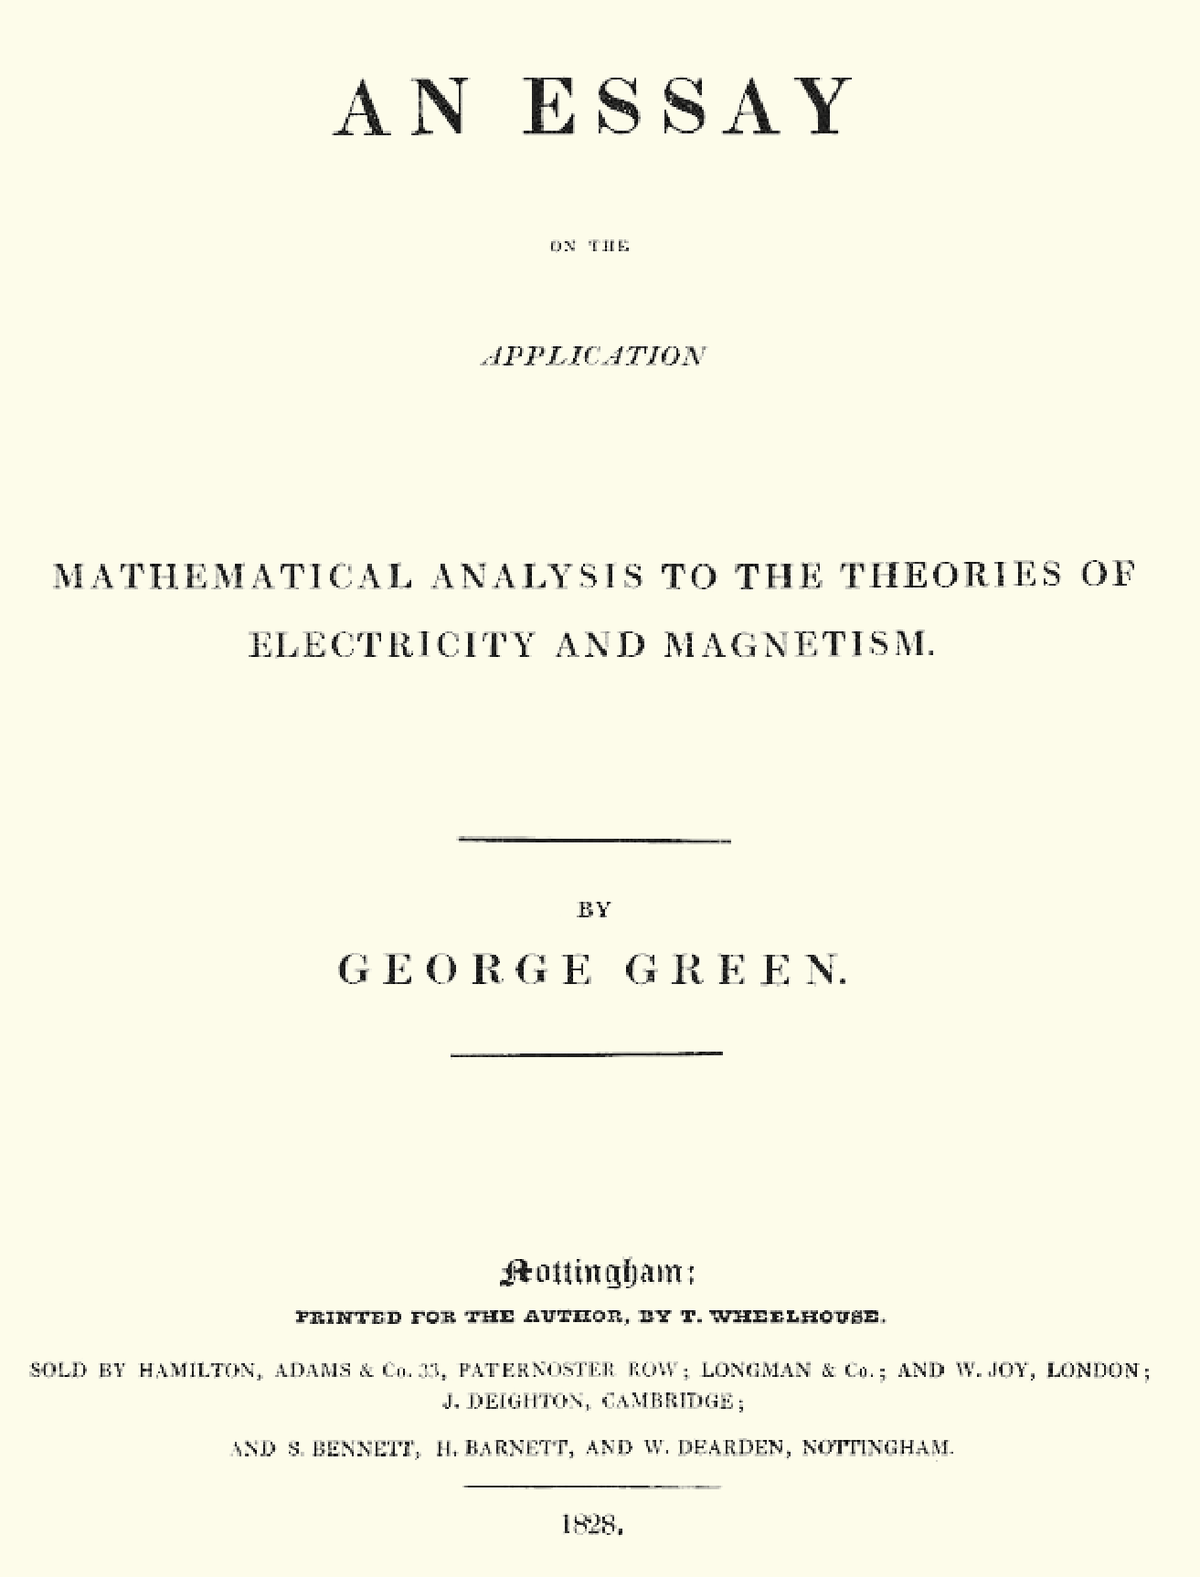 an essay on the application of mathematical analysis to the  an essay on the application of mathematical analysis to the theories of electricity and magnetism